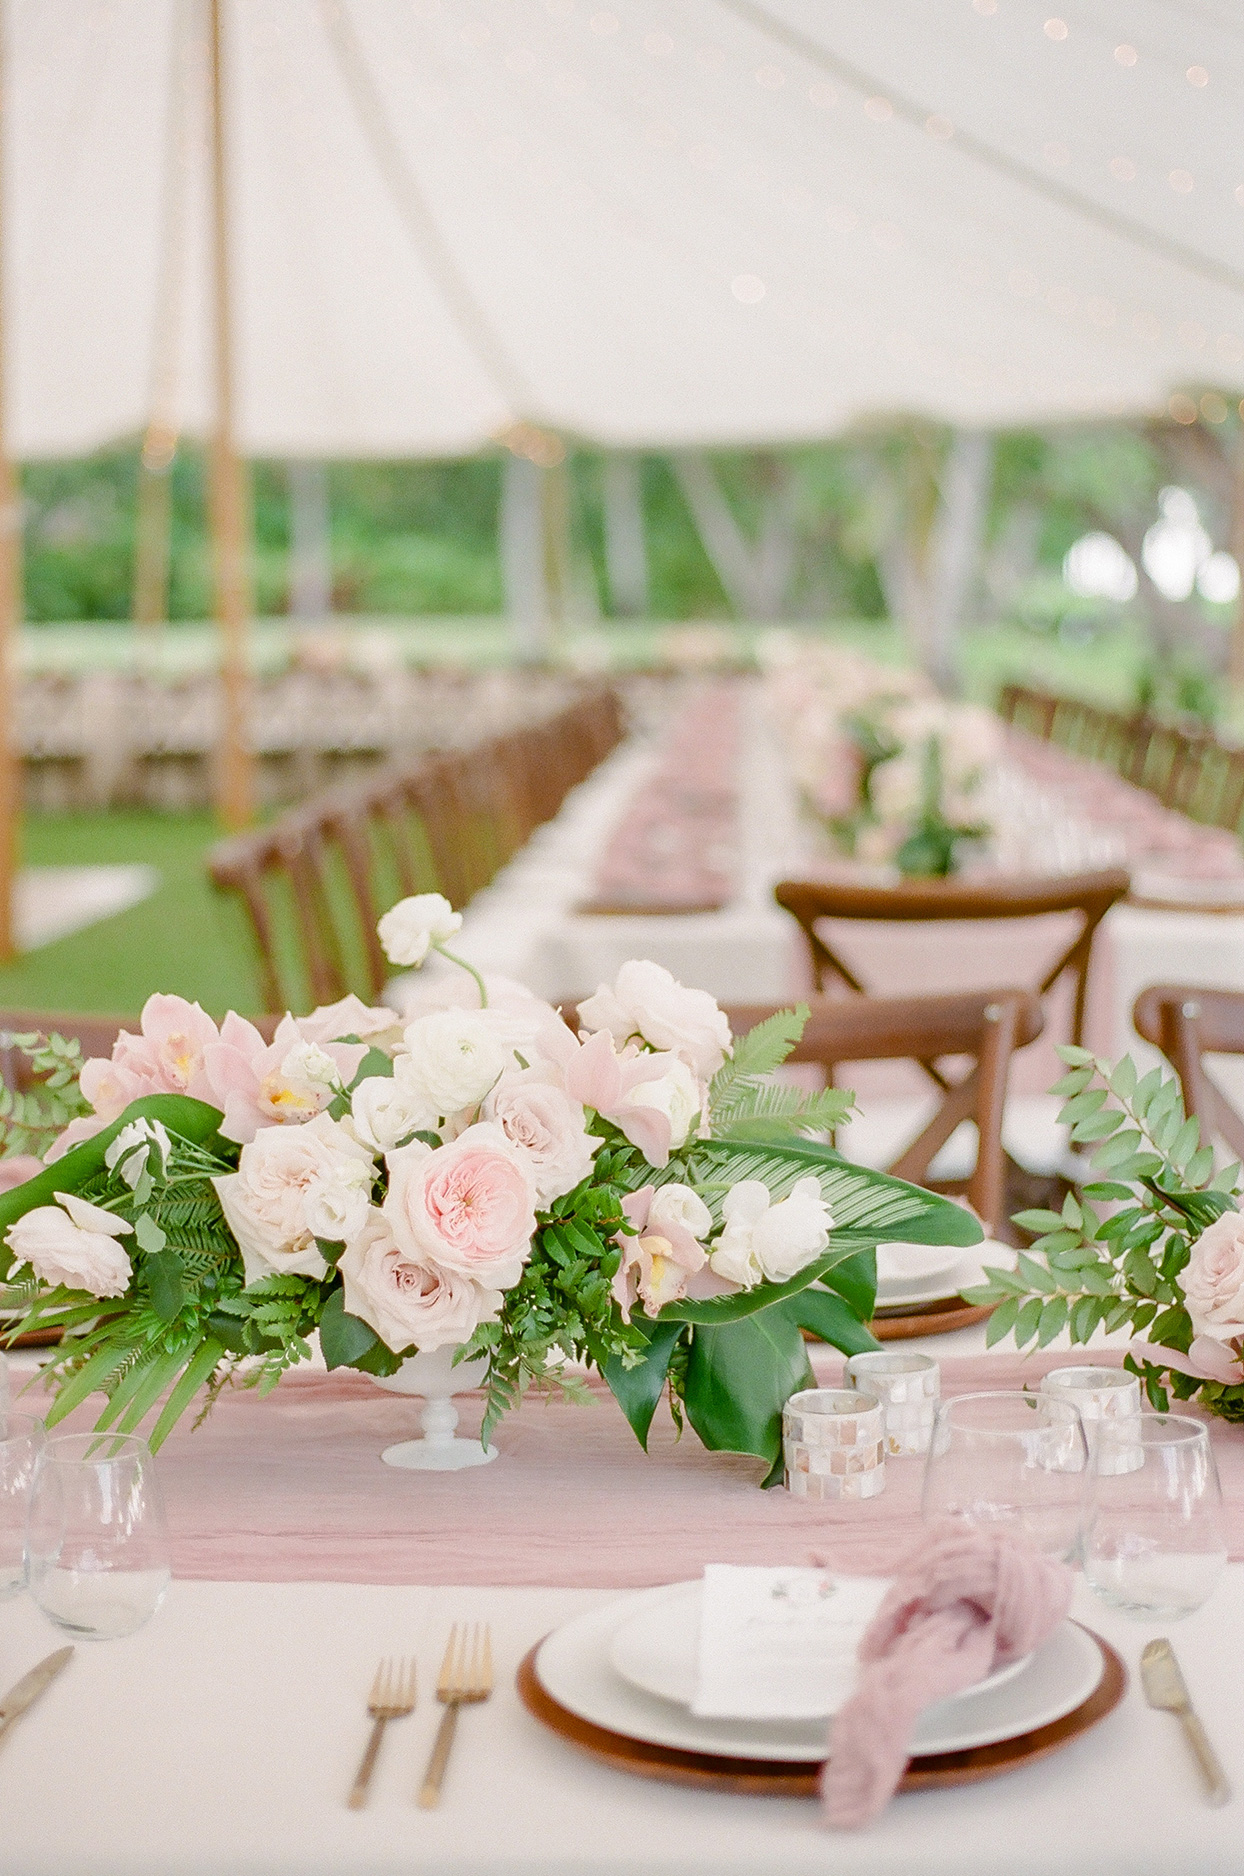 vanessa nathan wedding pastel pink table setting floral centerpiece